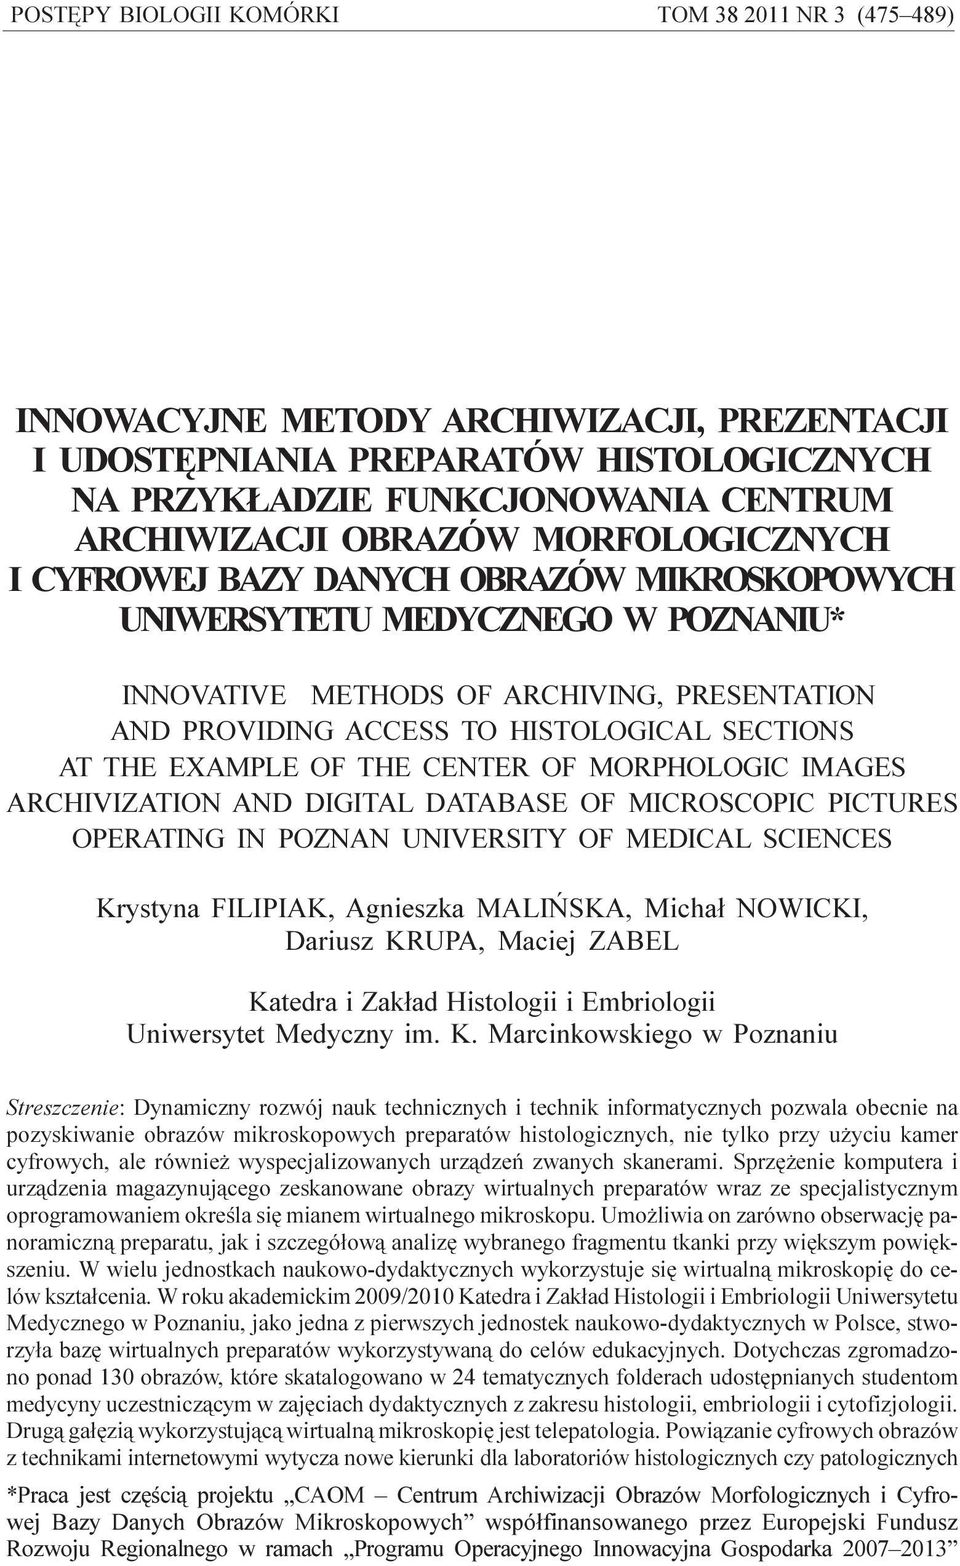 HISTOLOGICAL SECTIONS AT THE EXAMPLE OF THE CENTER OF MORPHOLOGIC IMAGES ARCHIVIZATION AND DIGITAL DATABASE OF MICROSCOPIC PICTURES OPERATING IN POZNAN UNIVERSITY OF MEDICAL SCIENCES Krystyna